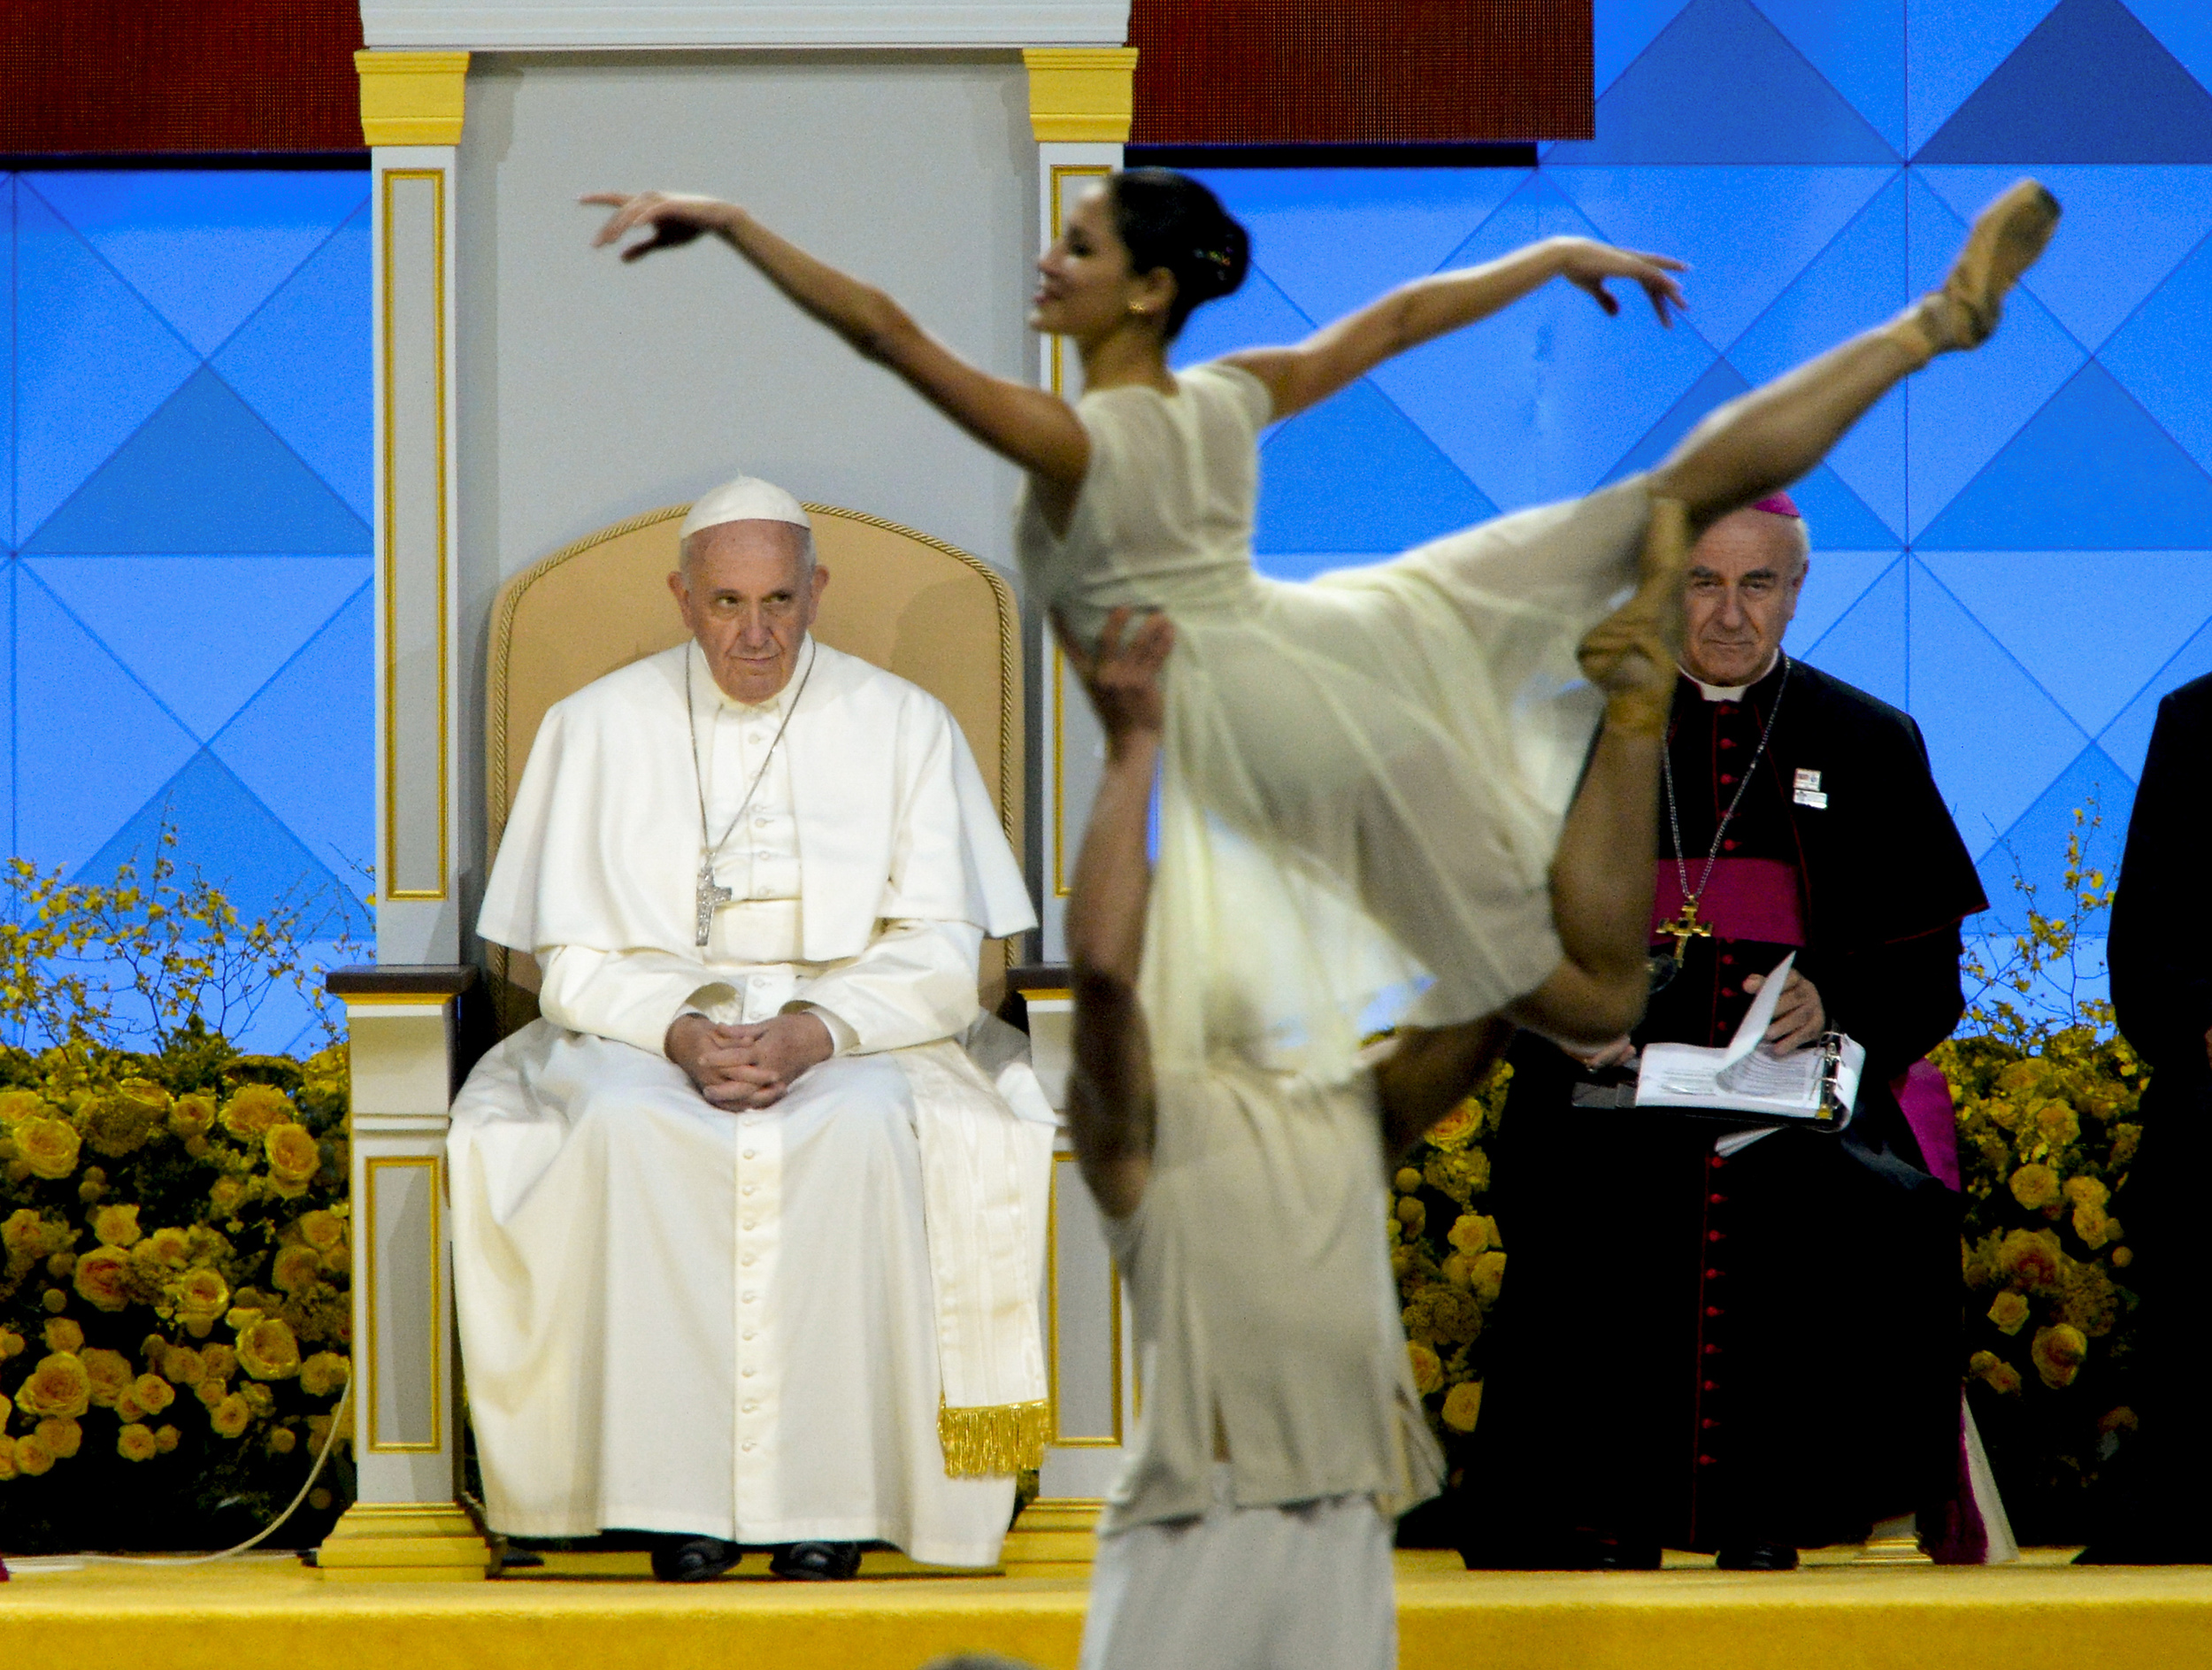 9/26/15 7:47:28 PM -- Philadelphia, PA, U.S.A  --Pope Francis watches The Pennsylvania Ballet  at Festival of Families along Benjamin Franklin Parkway in Philadelphia, Penn. on Saturday, Sept. 26, 2015. --